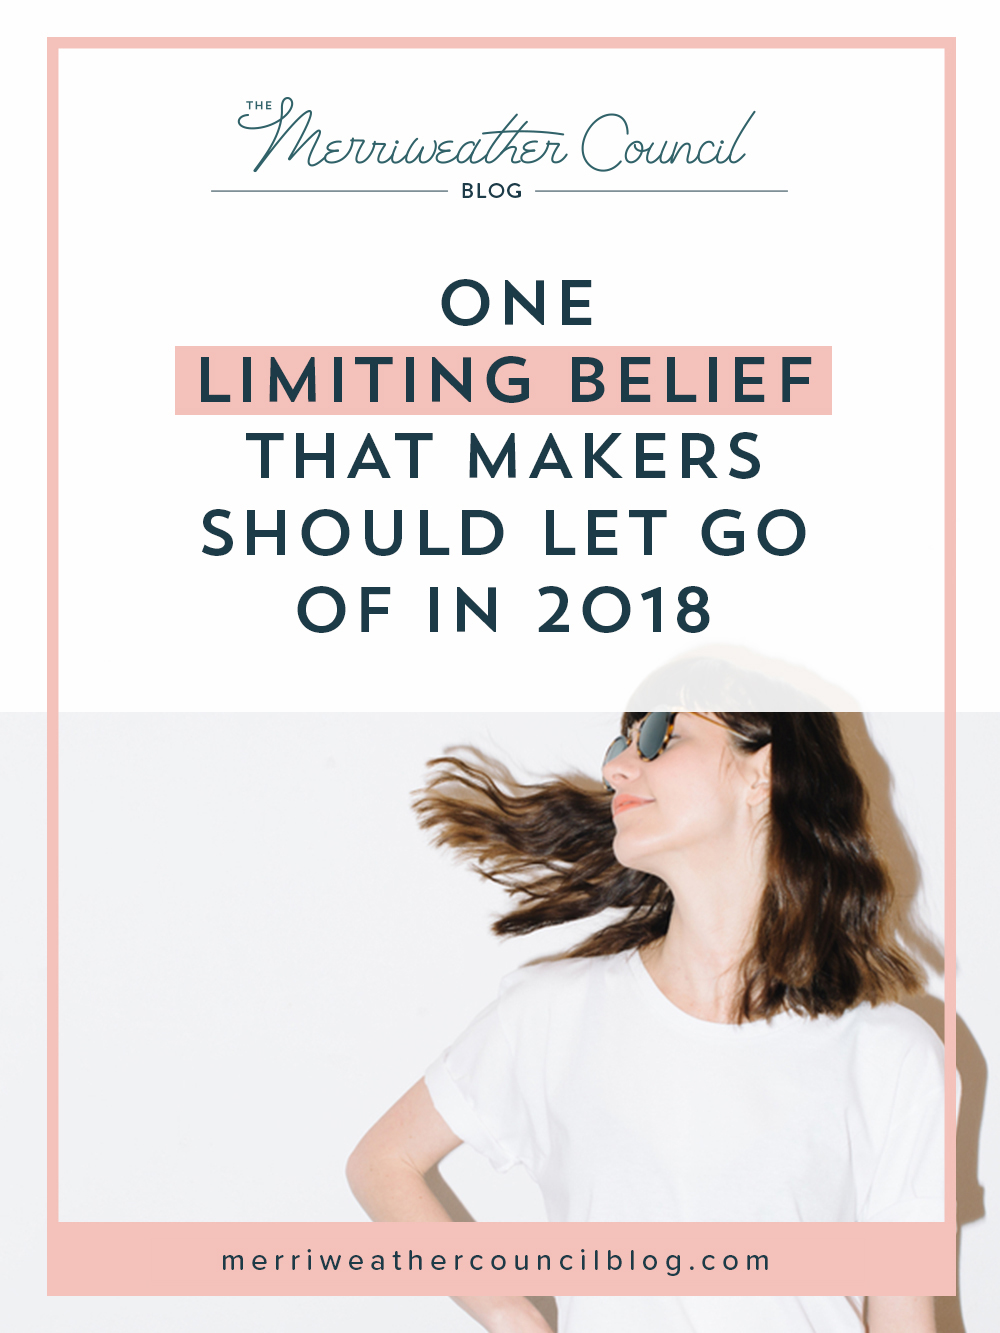 one limiting belief that makers should let go of in 2018